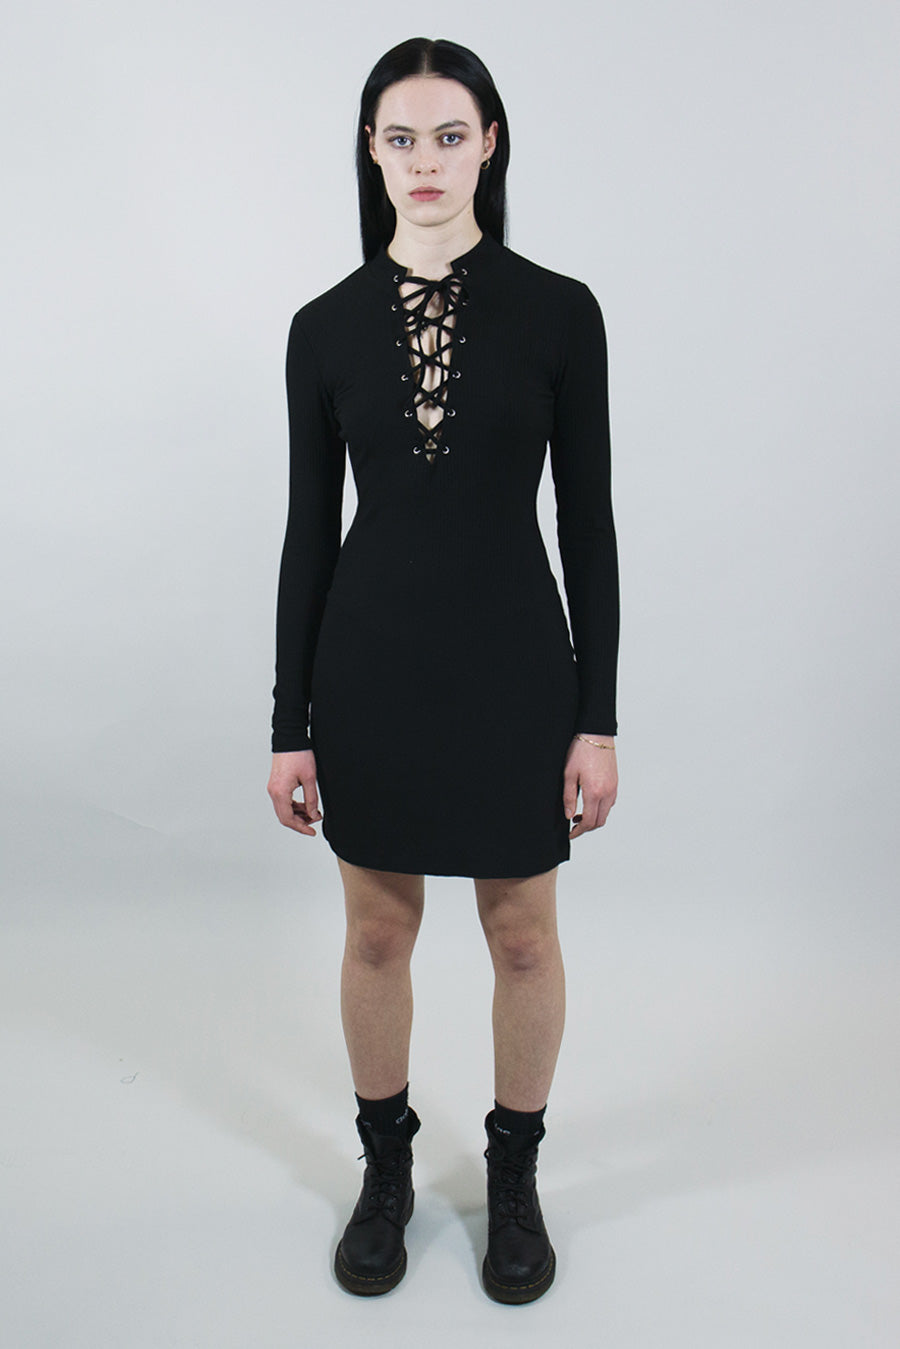 mary wyatt london black ribbed mini dress with lace up high neck alternative womens fashion